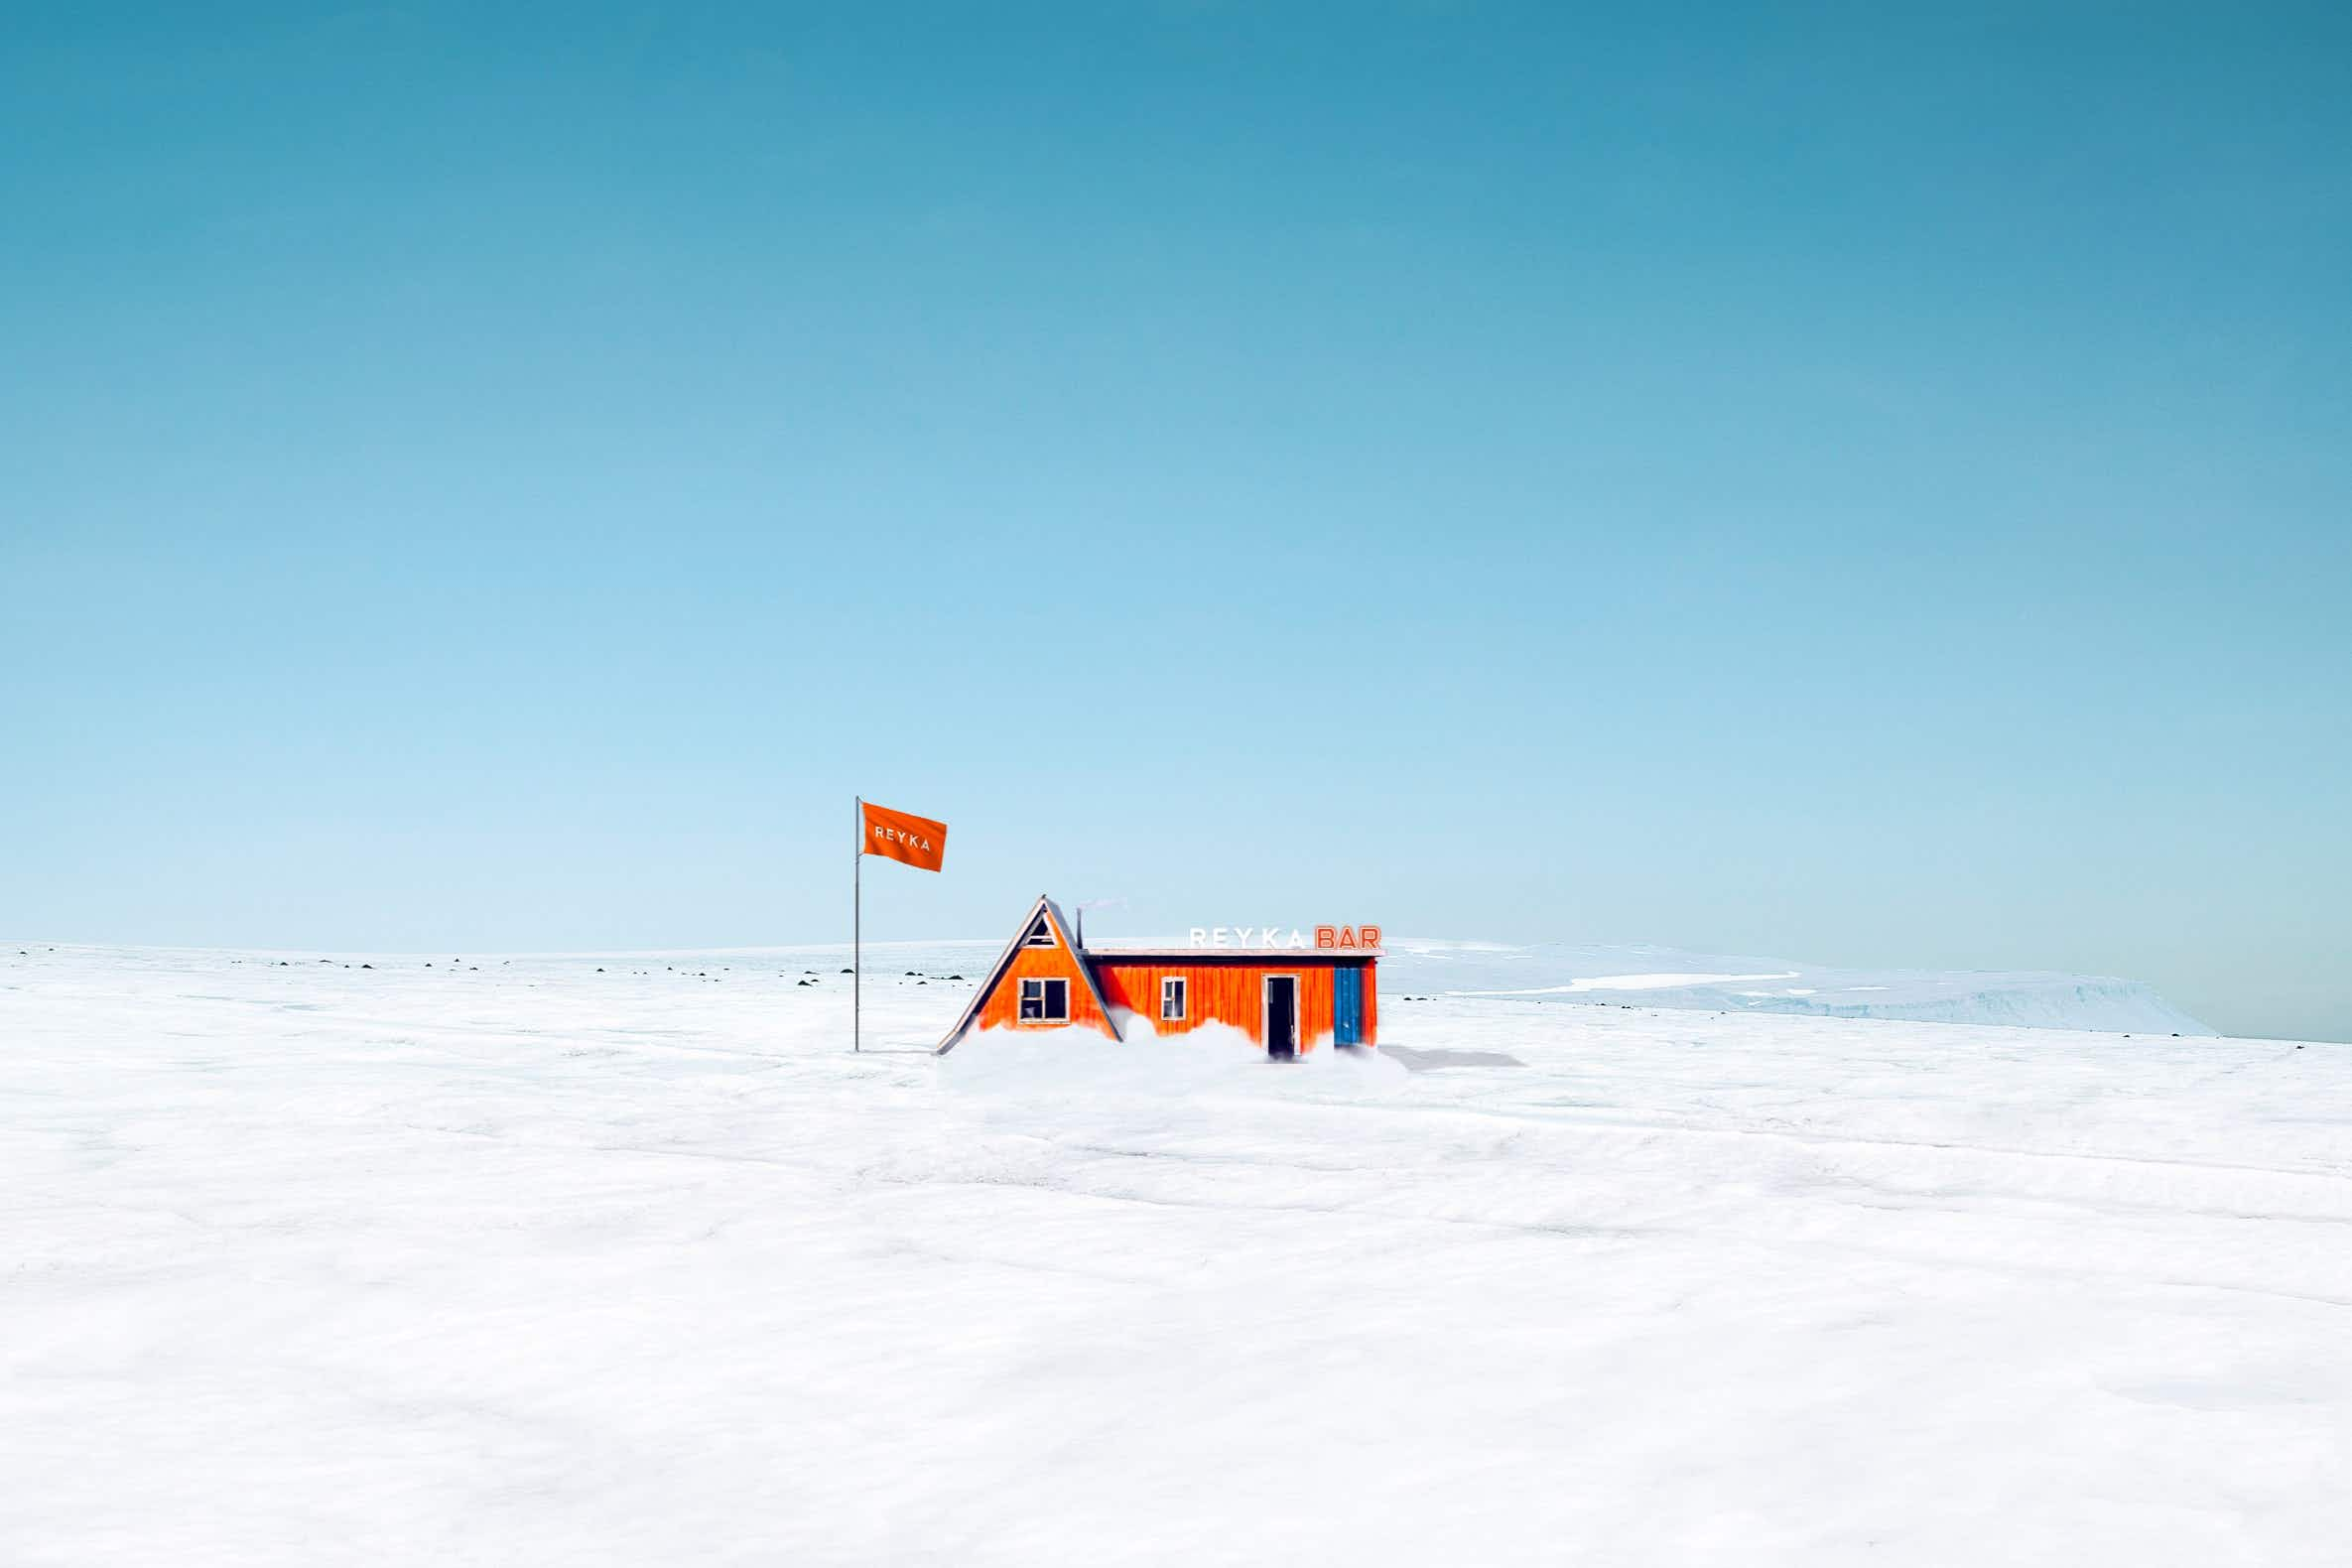 Visitors will get the opportunity to visitthe world's first standalone bar on a glacier in Iceland © Reyka Vodka